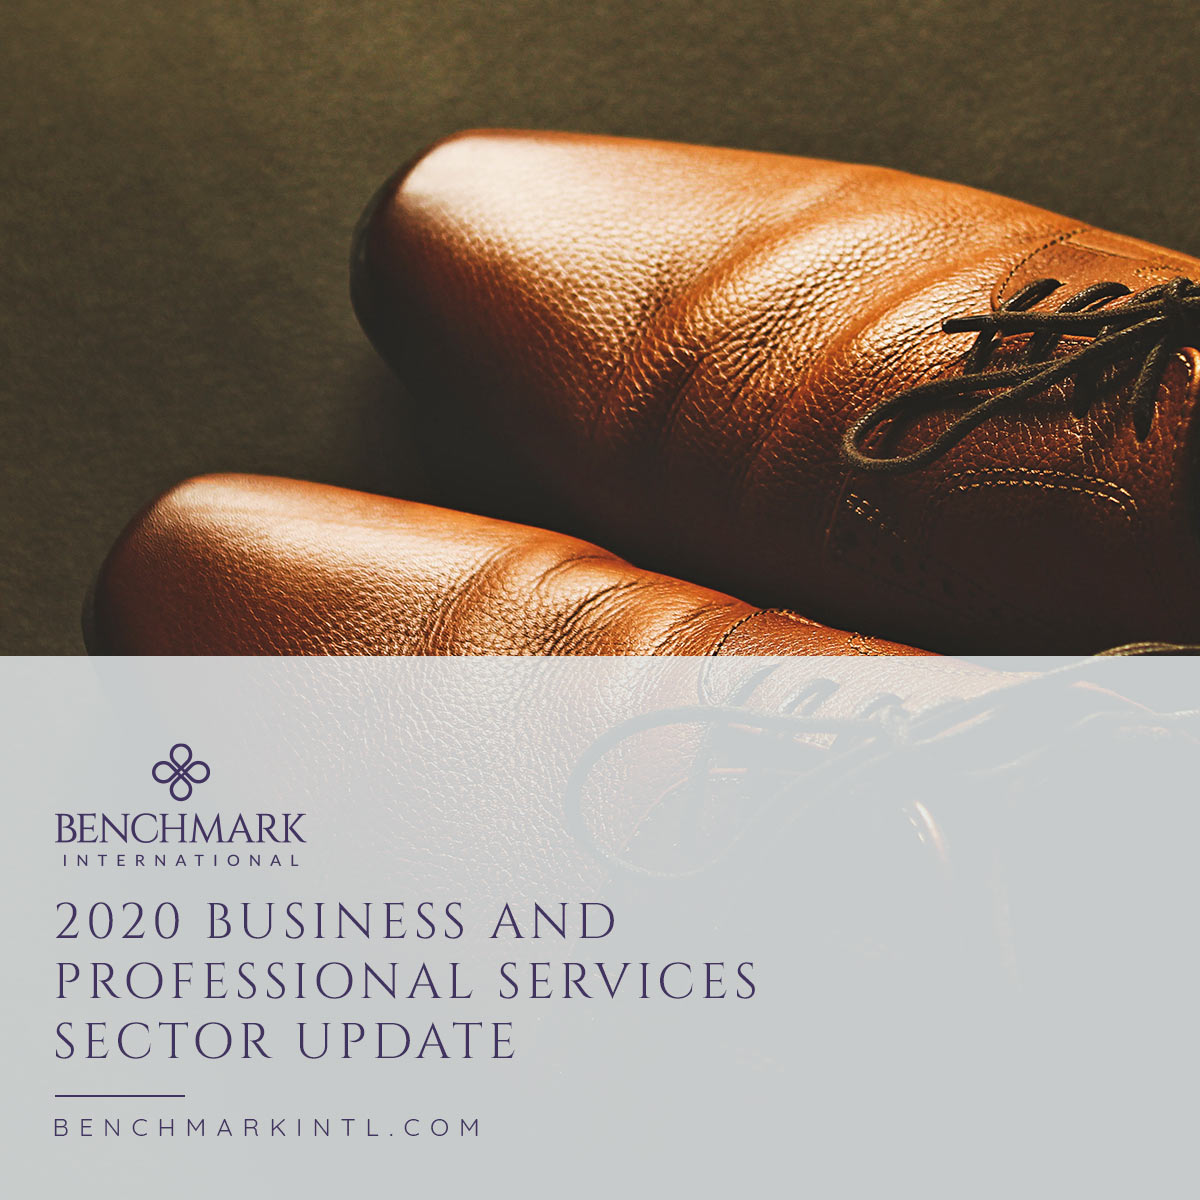 2020_Business_and_Professional_Services_Sector_Update_Social